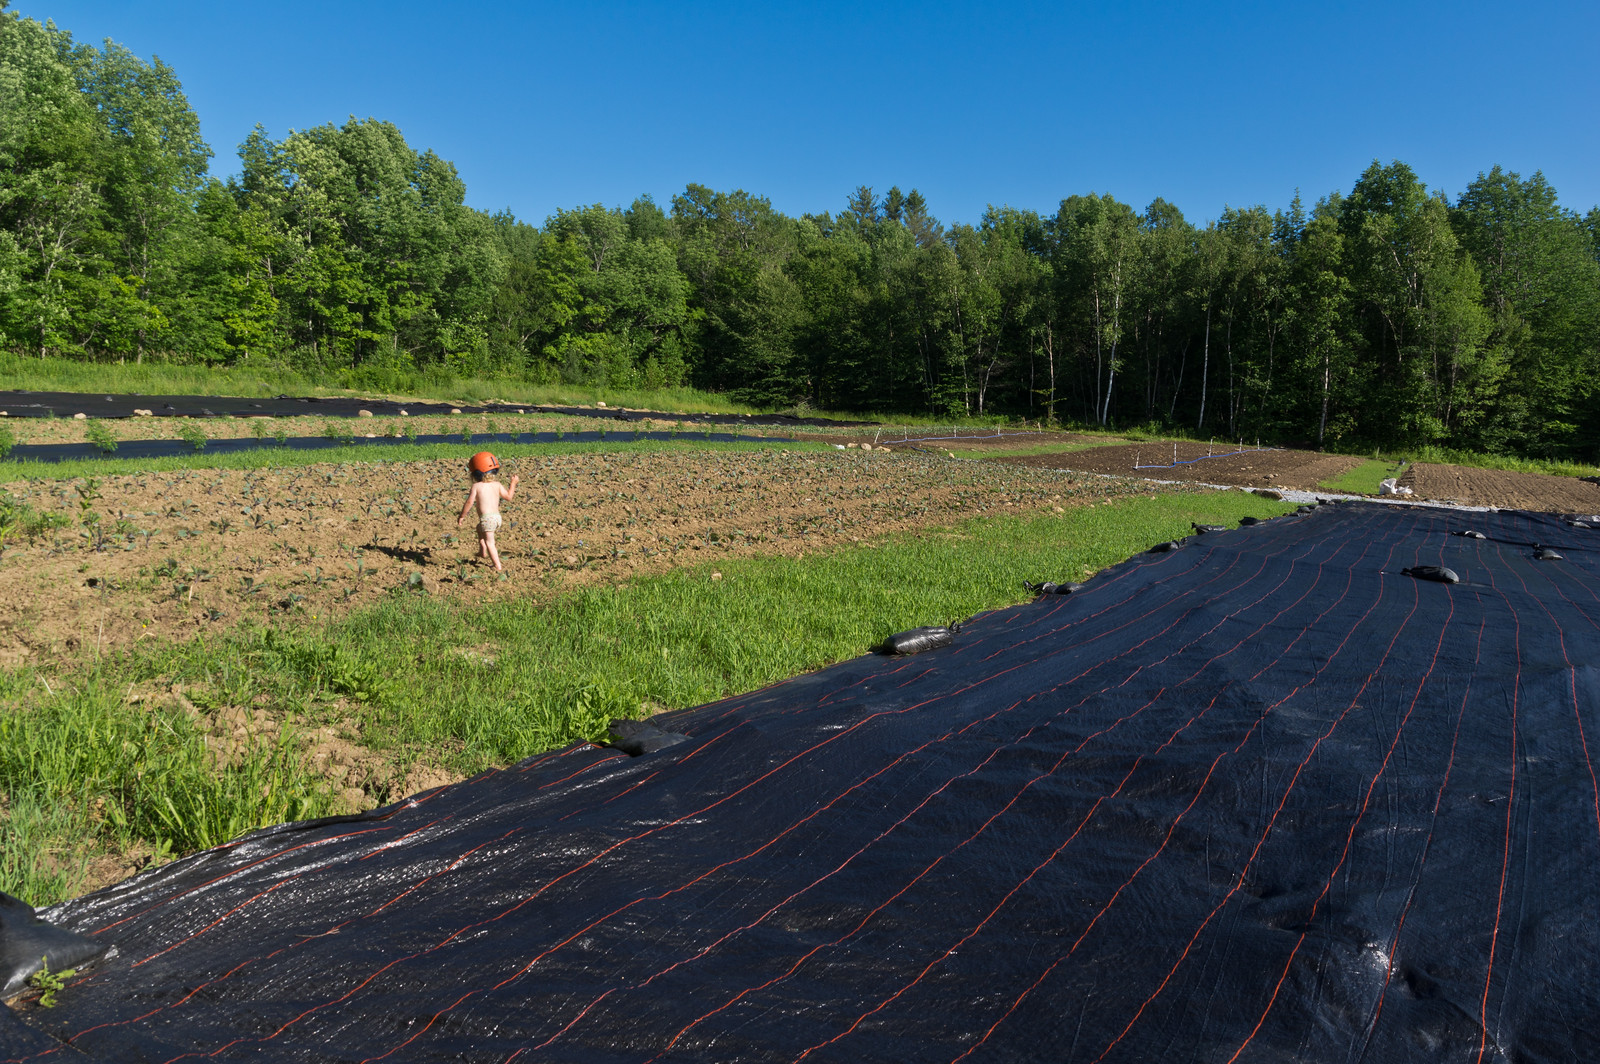 after a long afternoon of biking, a toddler chills out by checking out the fall cabbage planting, photo by Adam Ford